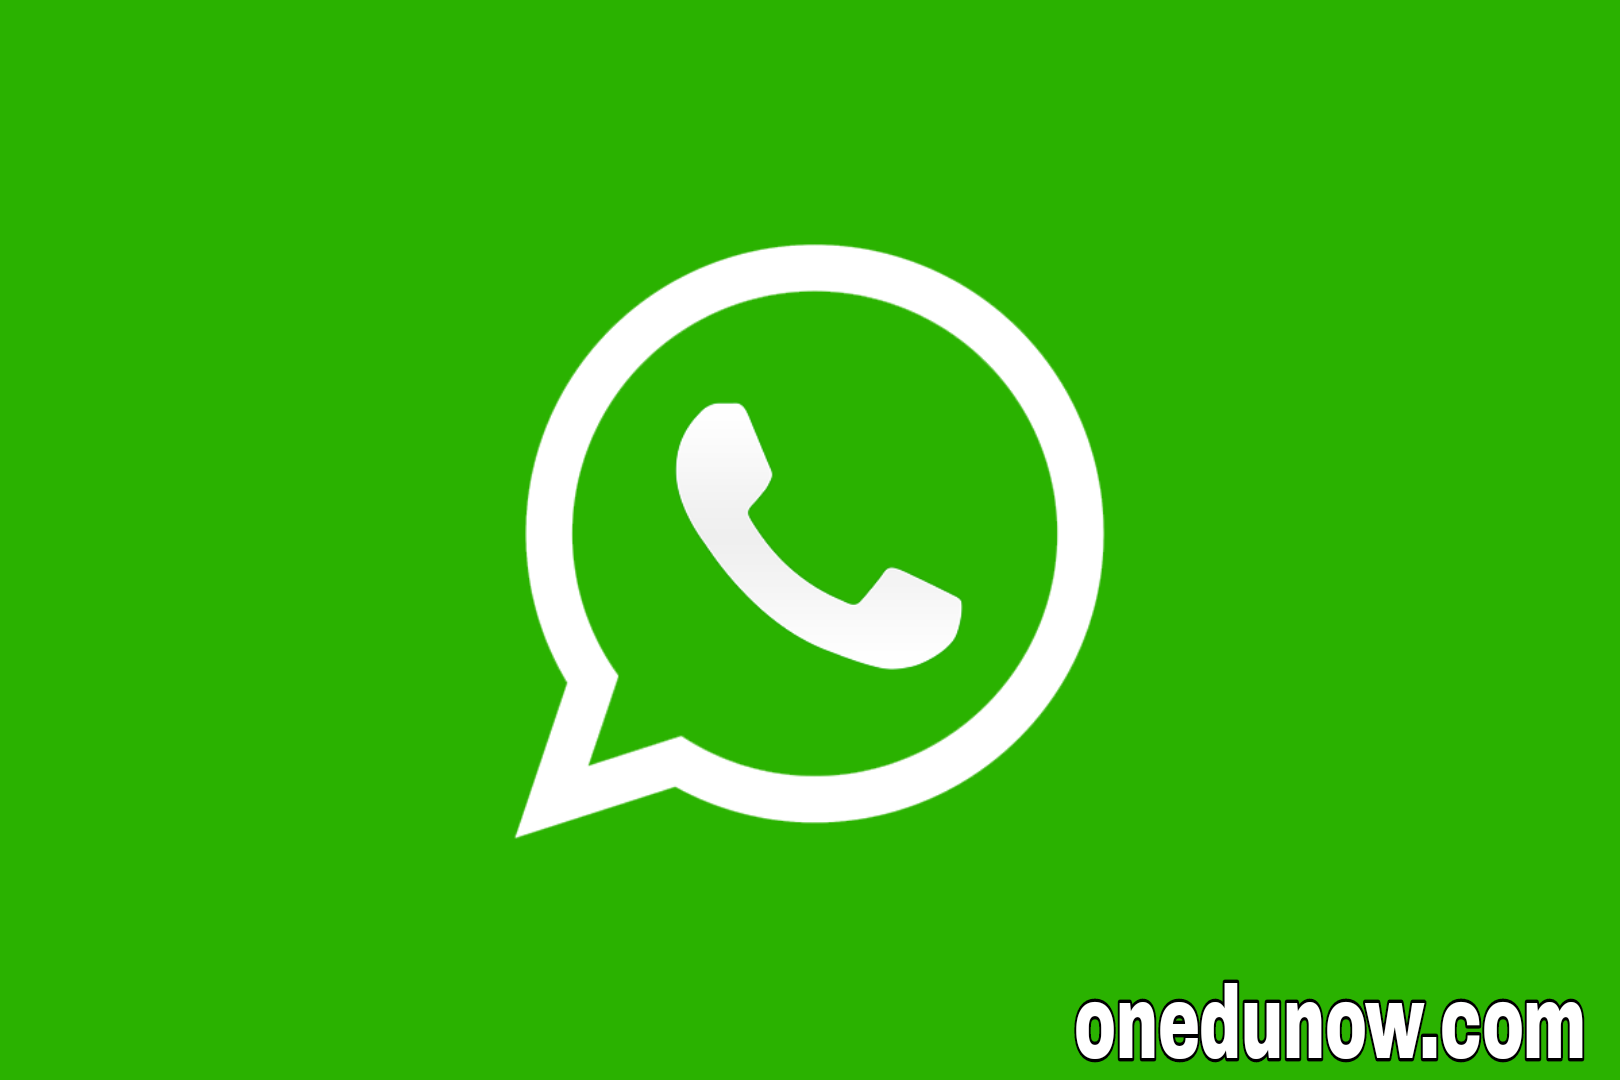 WhatsApp MOD APK v2.21.20.15 (Many Features) Download